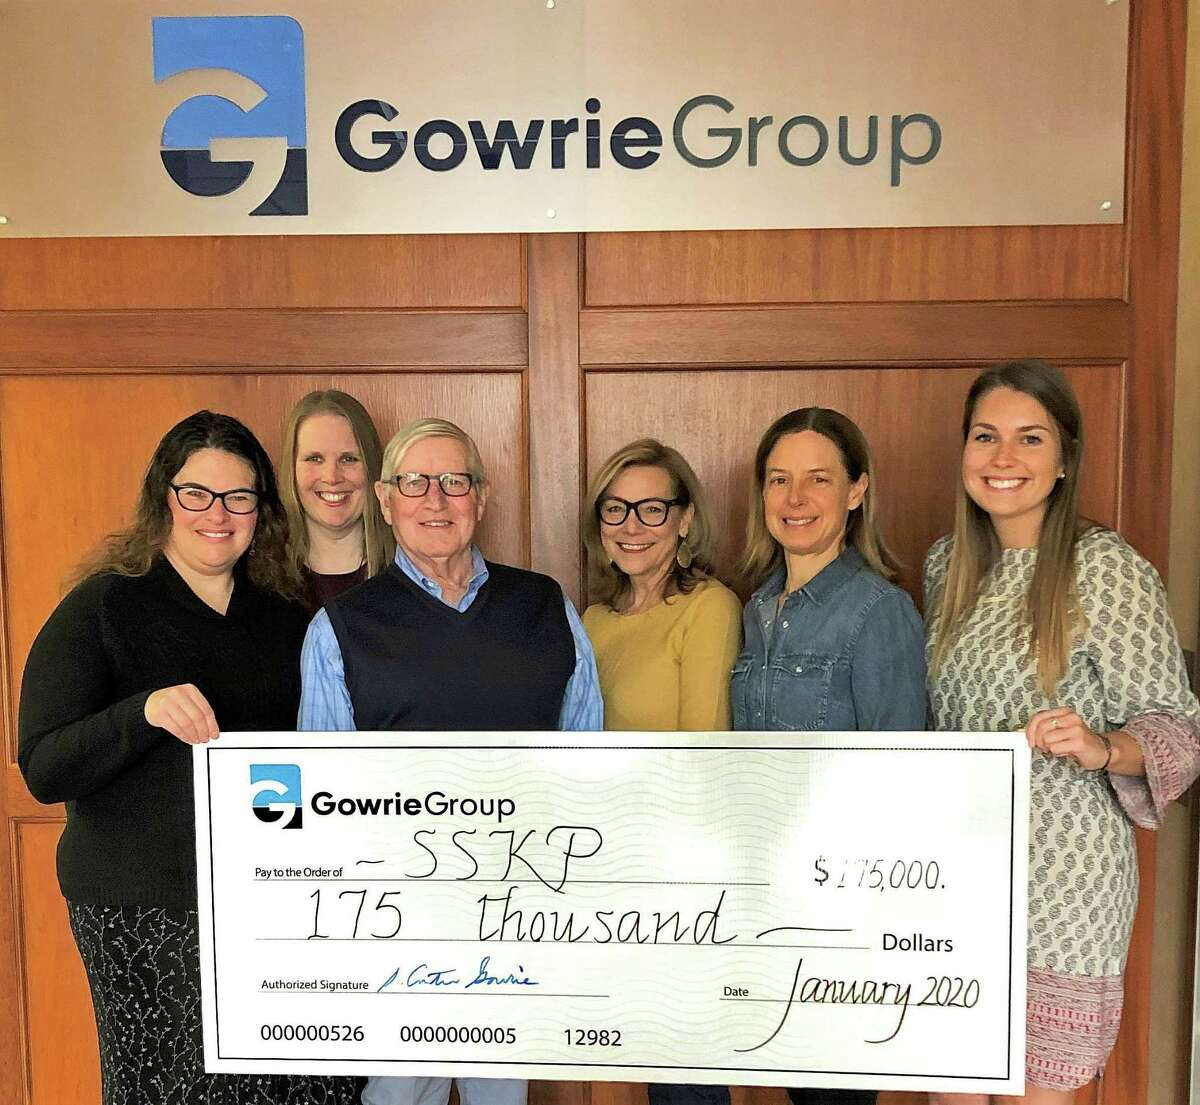 Gowrie Group's annual challenge last year raised $175,000 to benefit The Shoreline Soup Kitchens & Pantries. From left are Carol-Ann Myers of BrandTech, Amy Hollis of the soup kitchens, Gowrie Group founder Carter Gowrie, Linda Dillon, volunteer and Gowrie retiree, Whitney Peterson, Gowrie director of marketing; and Laura MacLeod, marketing coordinator.